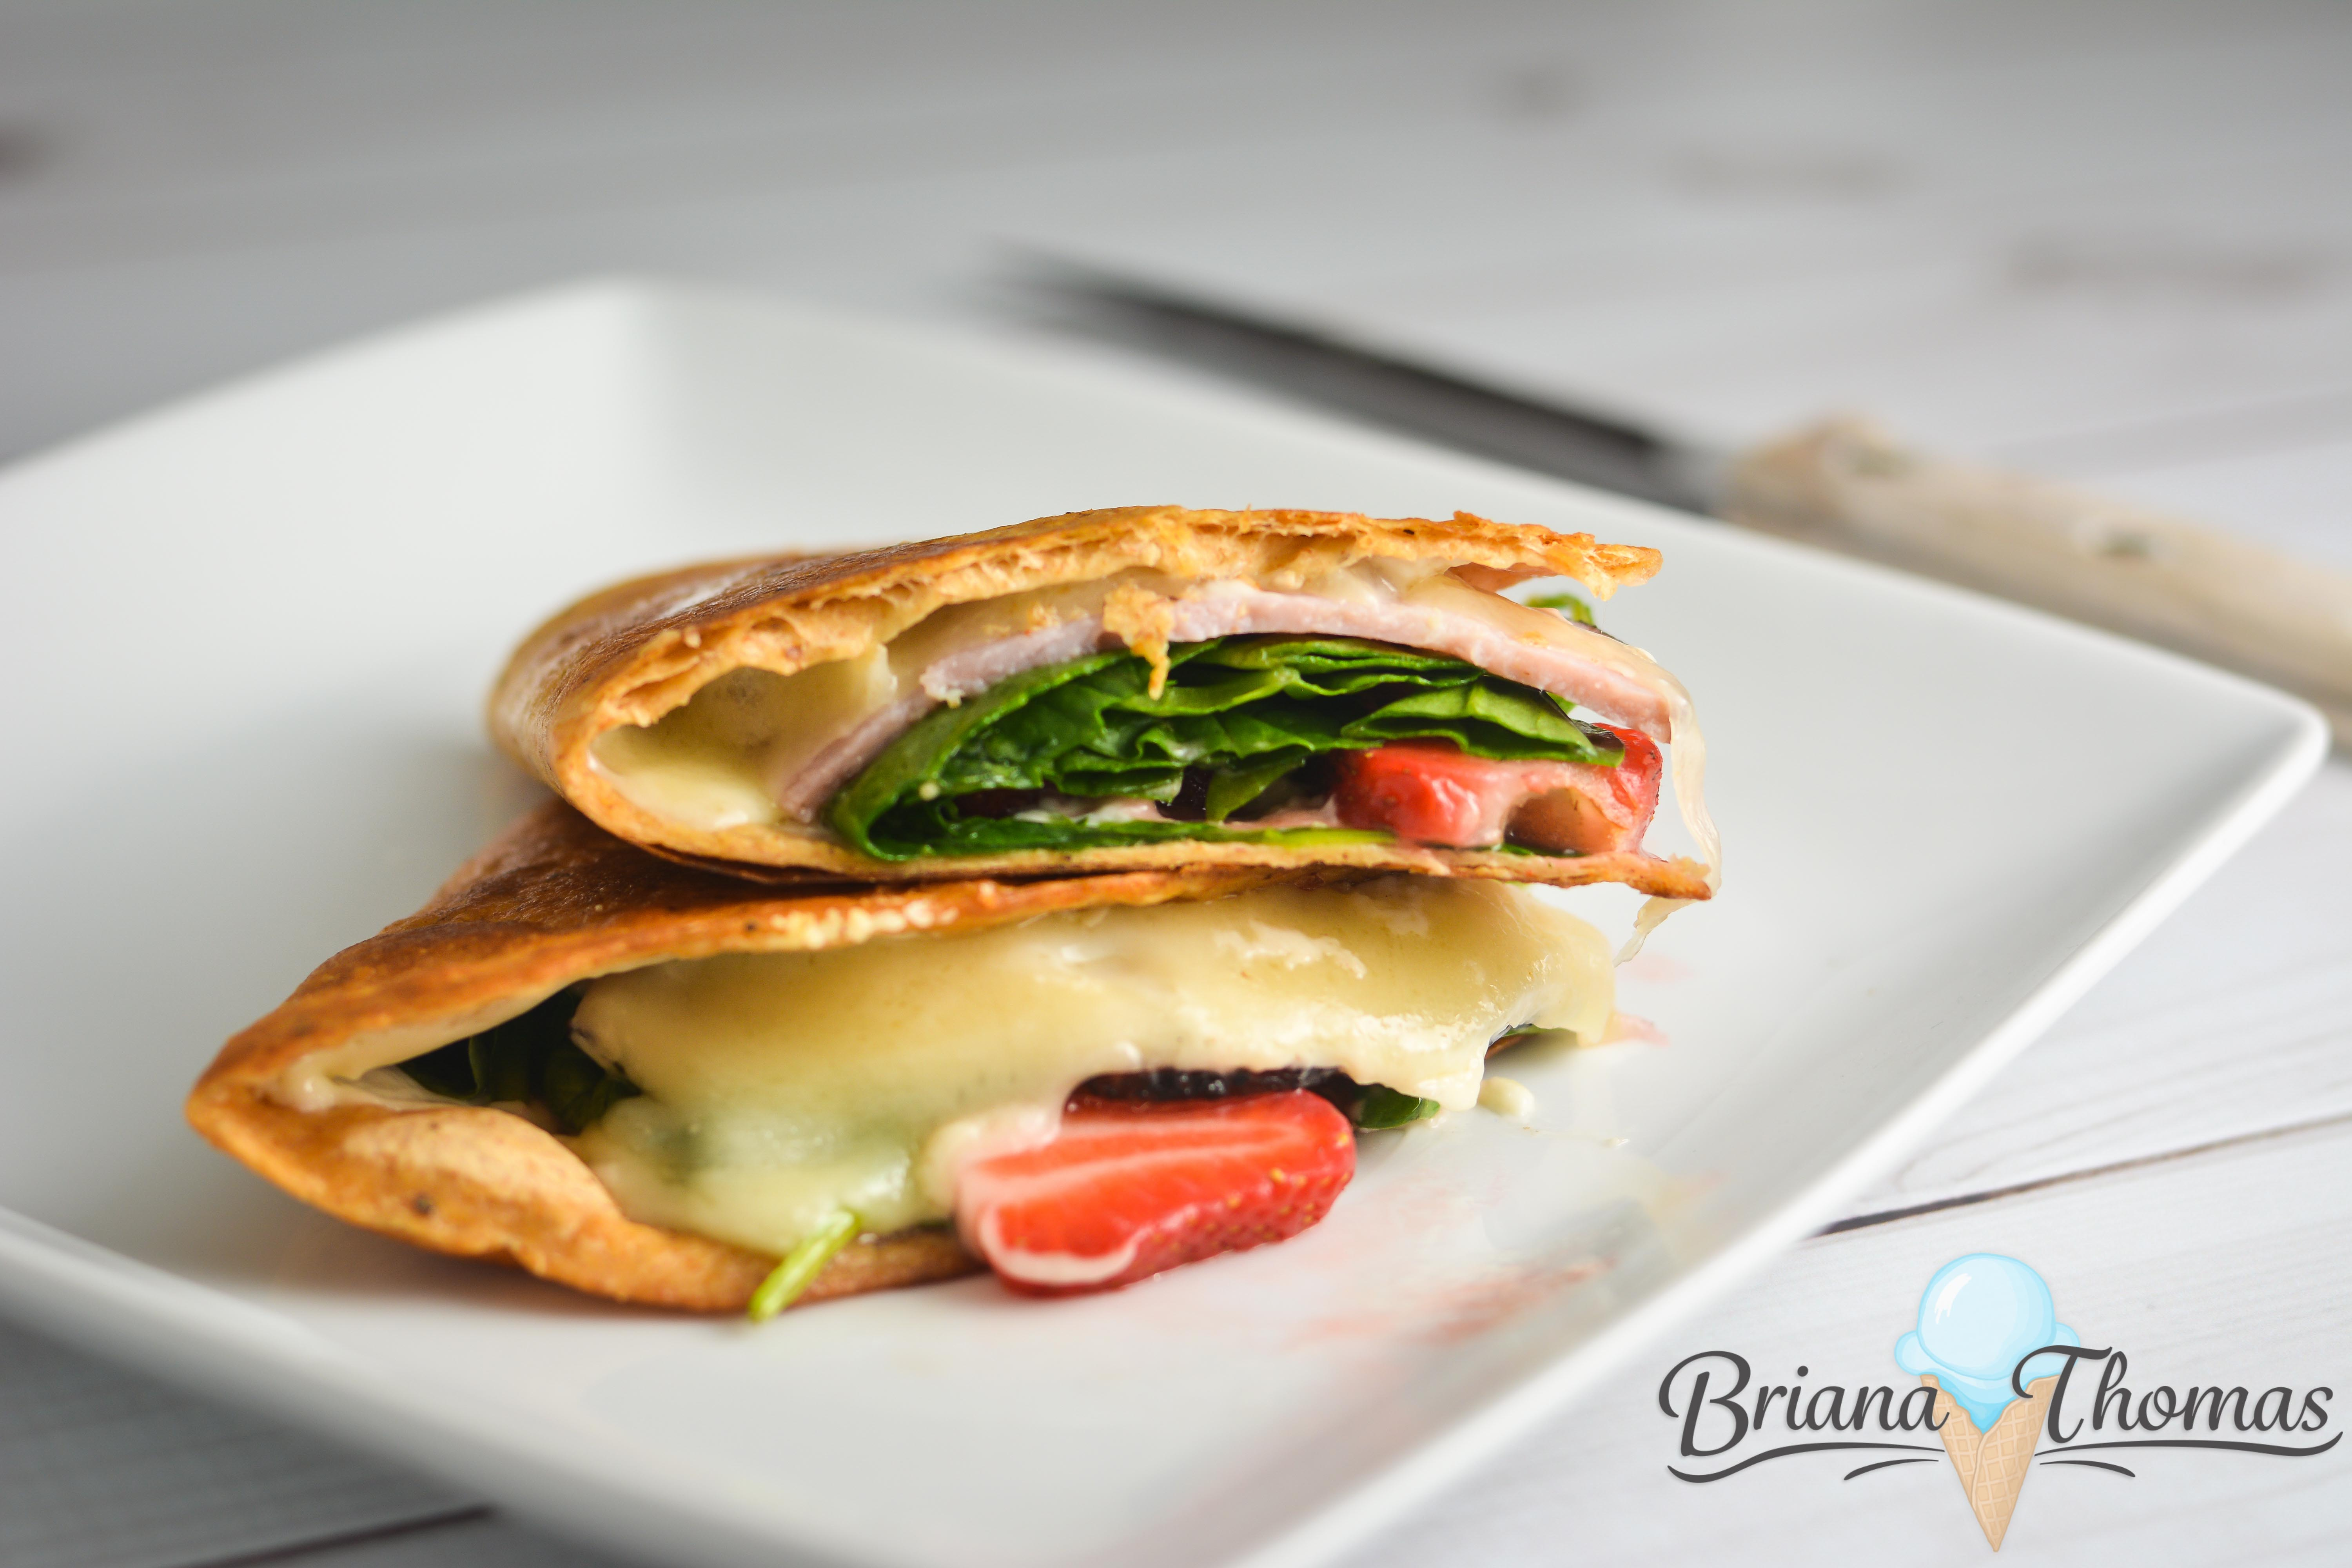 """This Strawberry Ham & Swiss Quesadilla might be on the """"unusual foods"""" list, but I happen to think it's a brilliant combination! THM:S"""